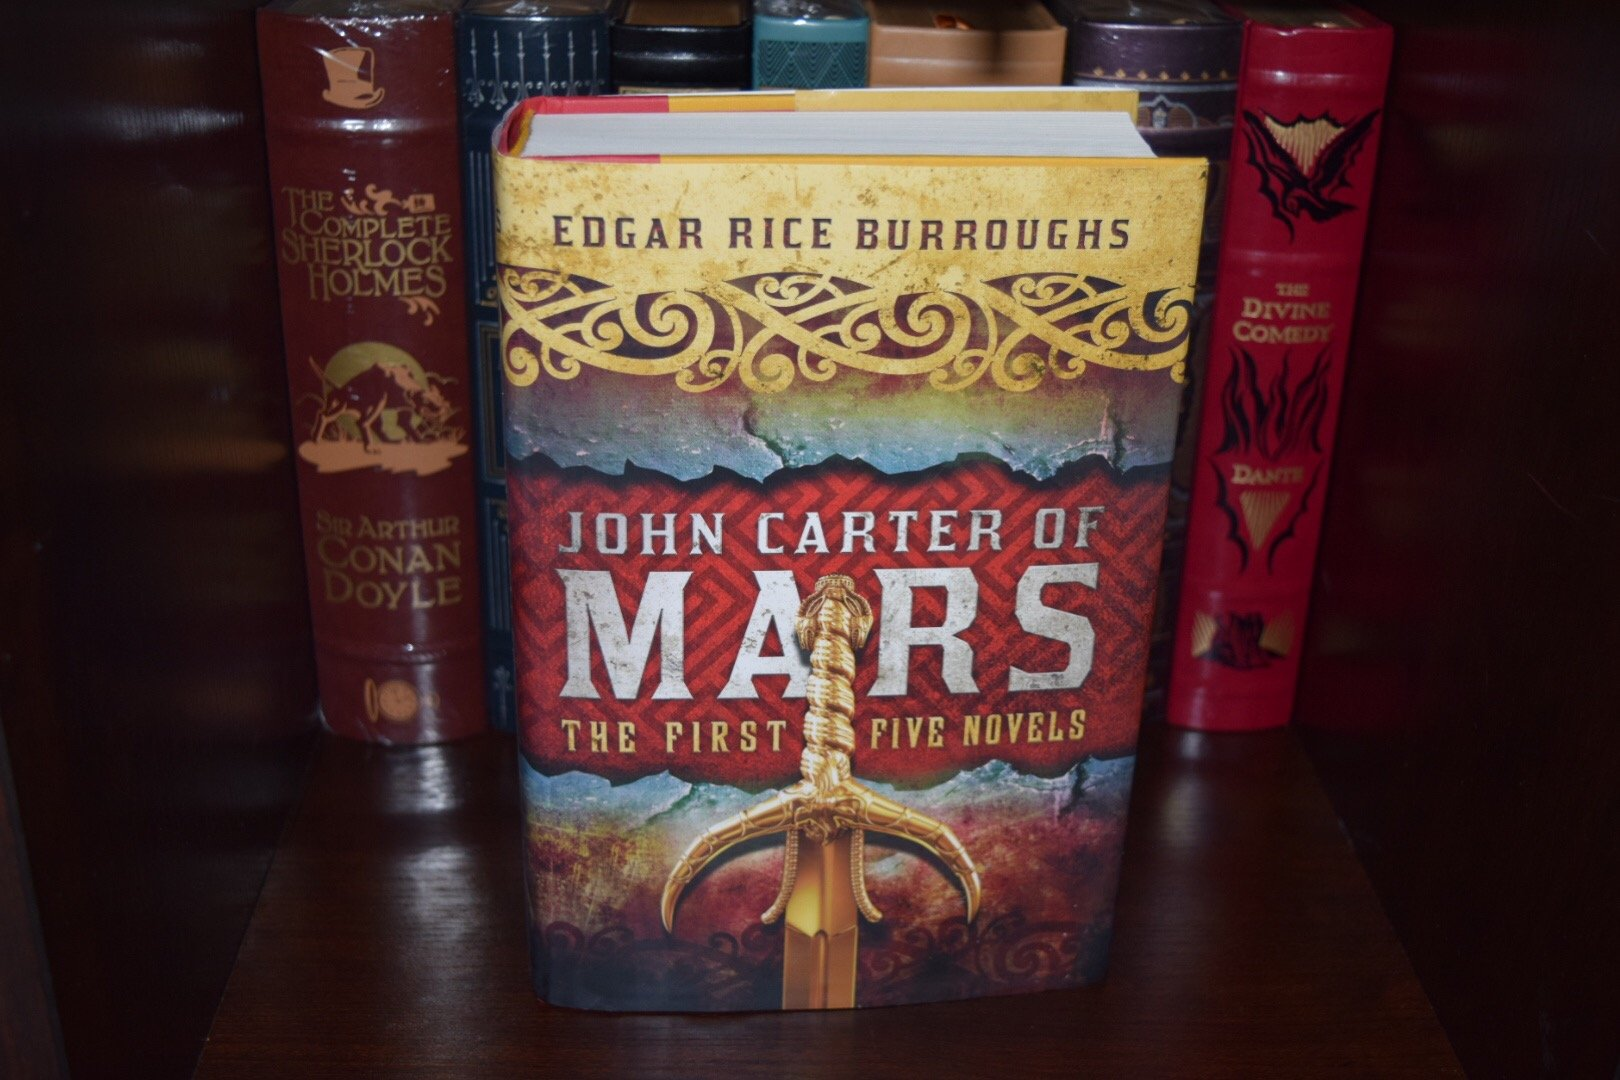 John Carter of Mars 1st Five Novels by Edgar Burroughs New Hardcover Edition